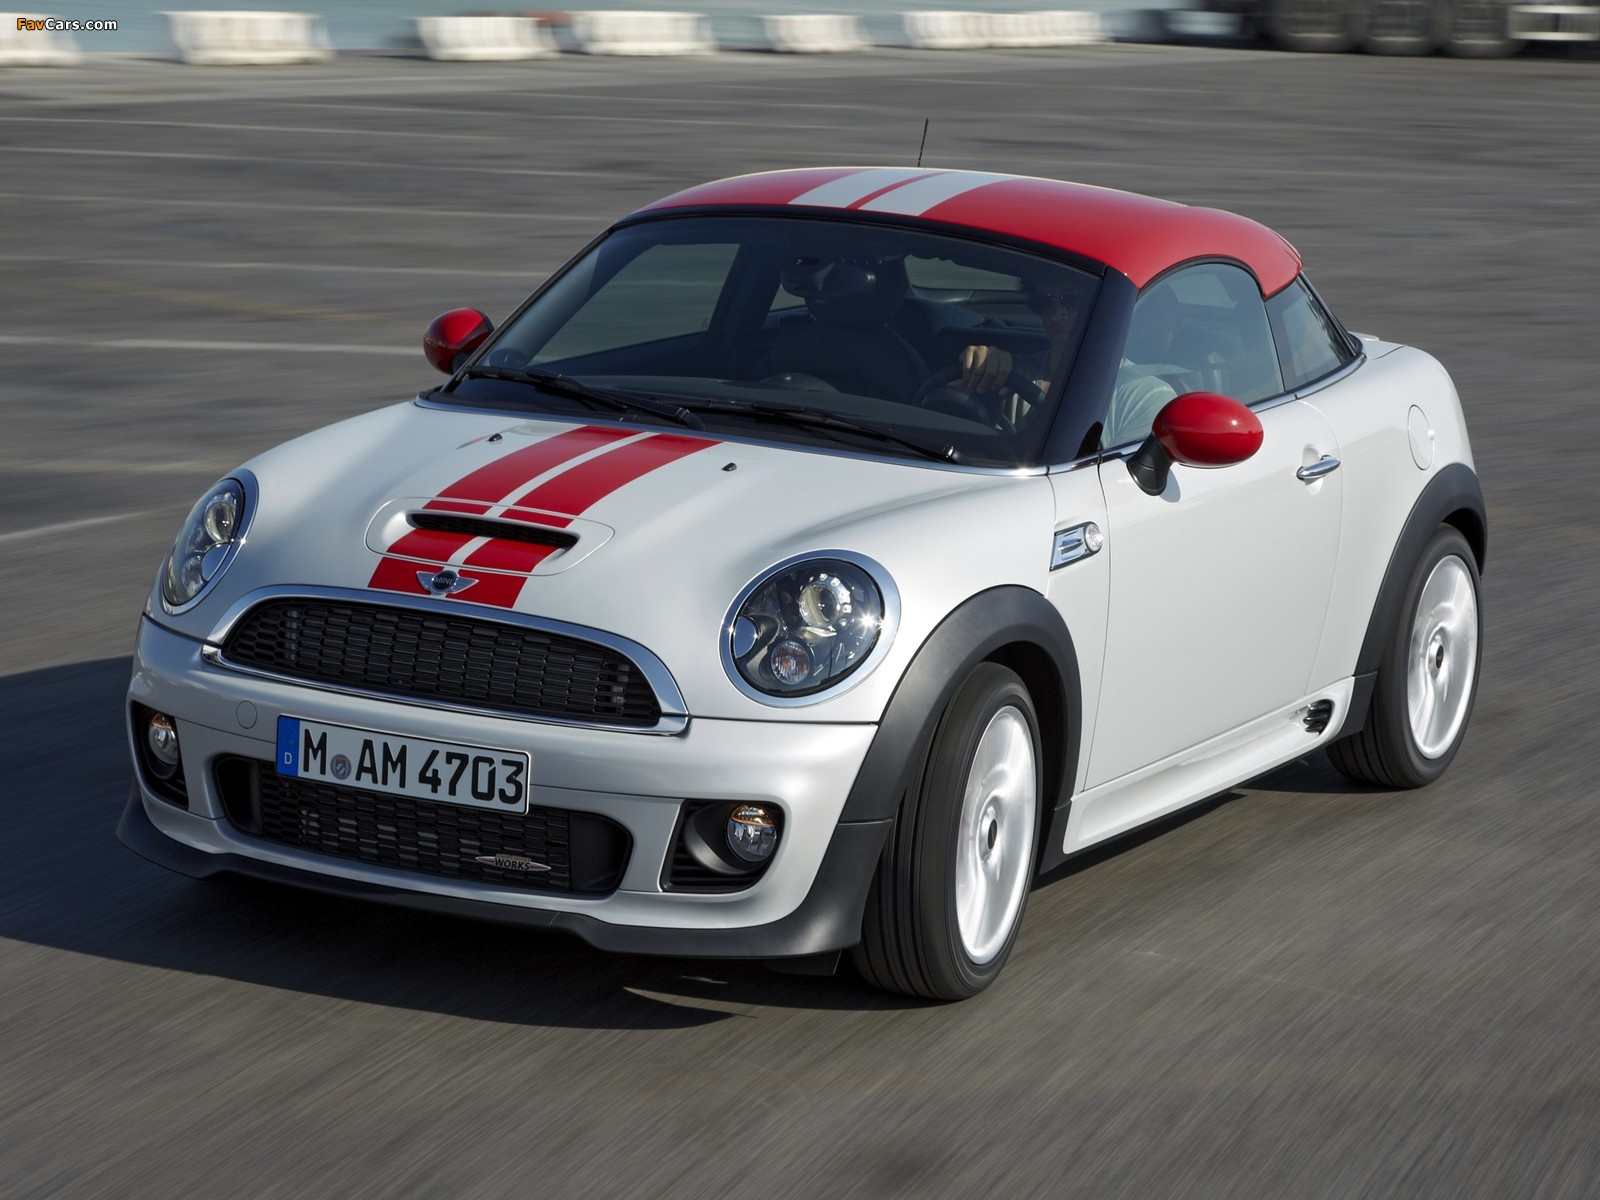 MINI John Cooper Works Coupe (R58) 2011 images (1600 x 1200)